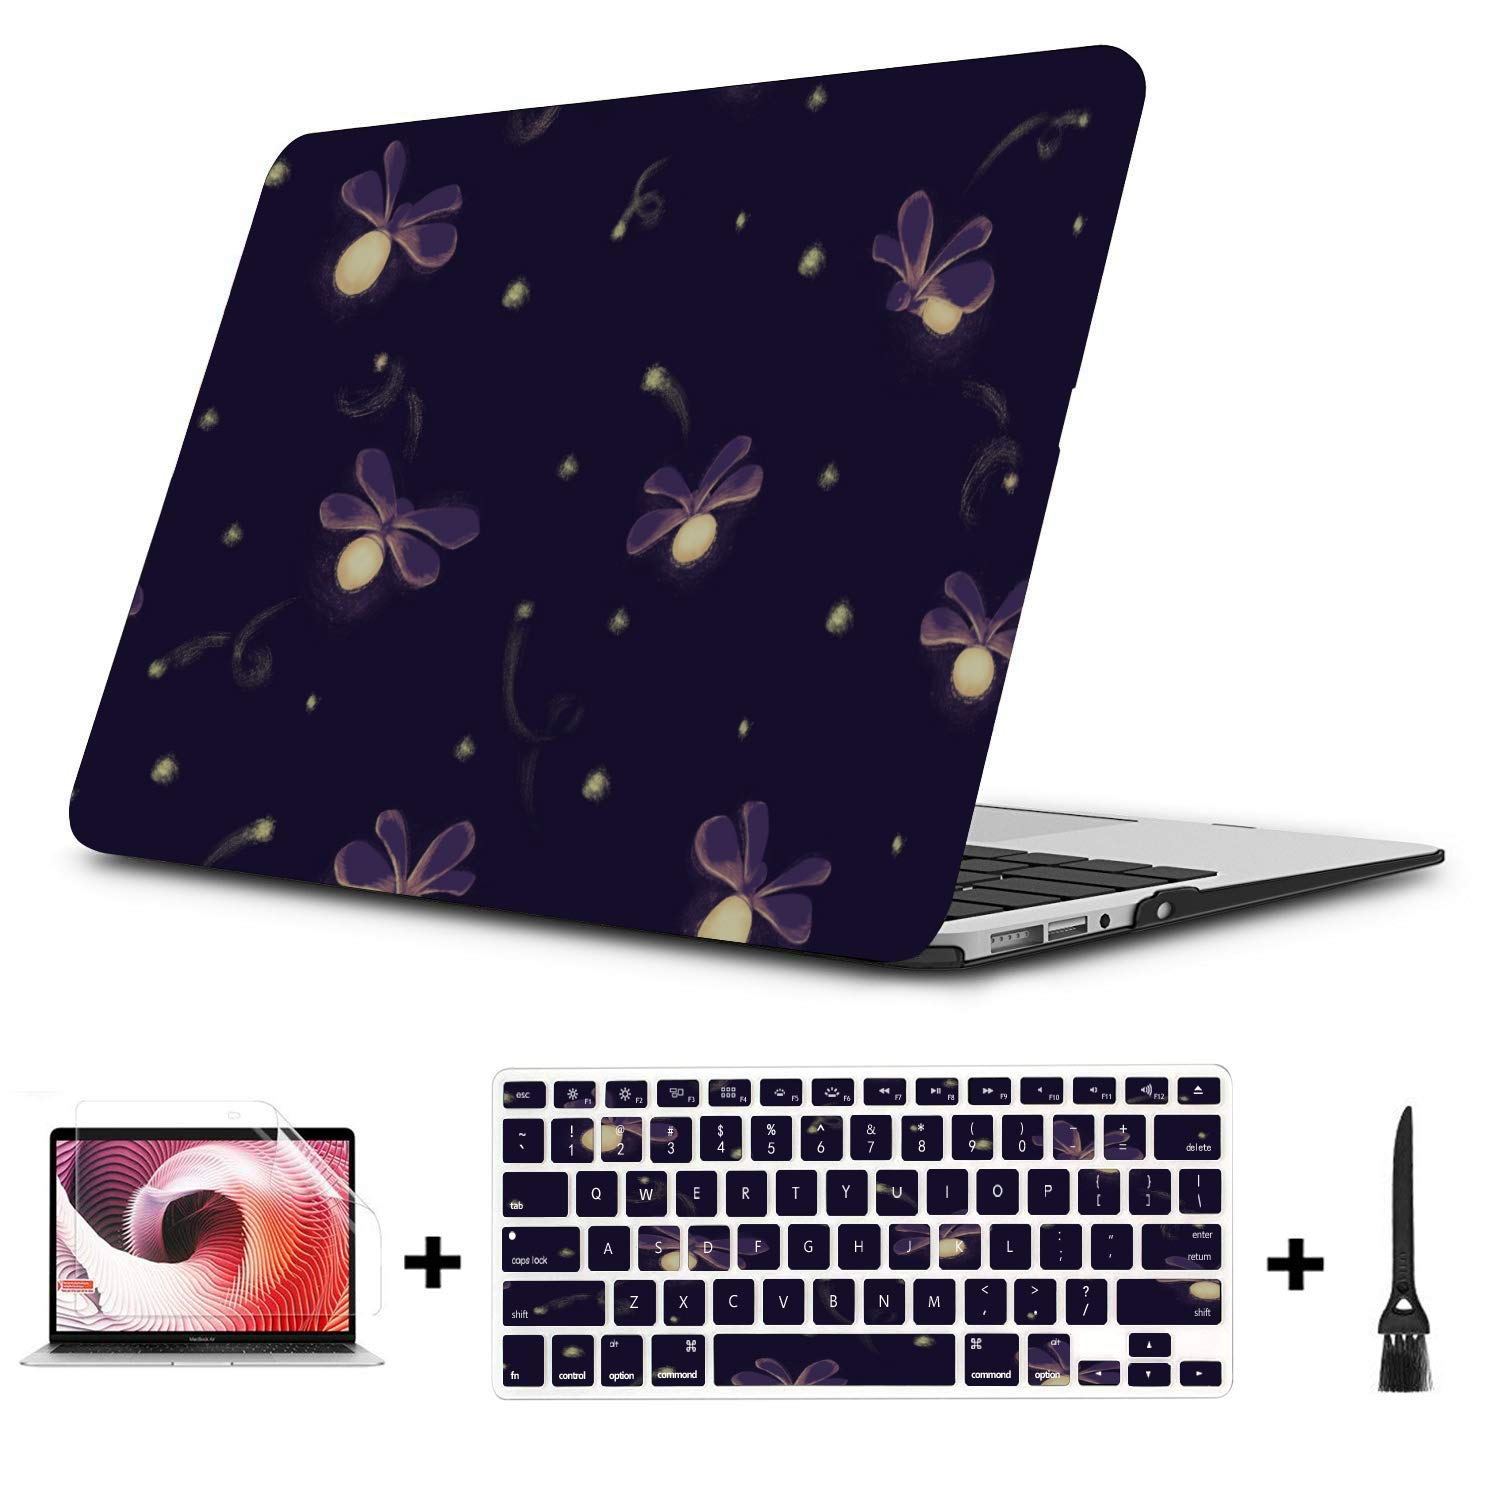 Mac Computer Case Shiny Night Romantic Insects Firefly Plastic Hard Shell Compatible Mac Air 11 Pro 13 15 Laptop Hard Case Protection for MacBook 2016-2019 Version